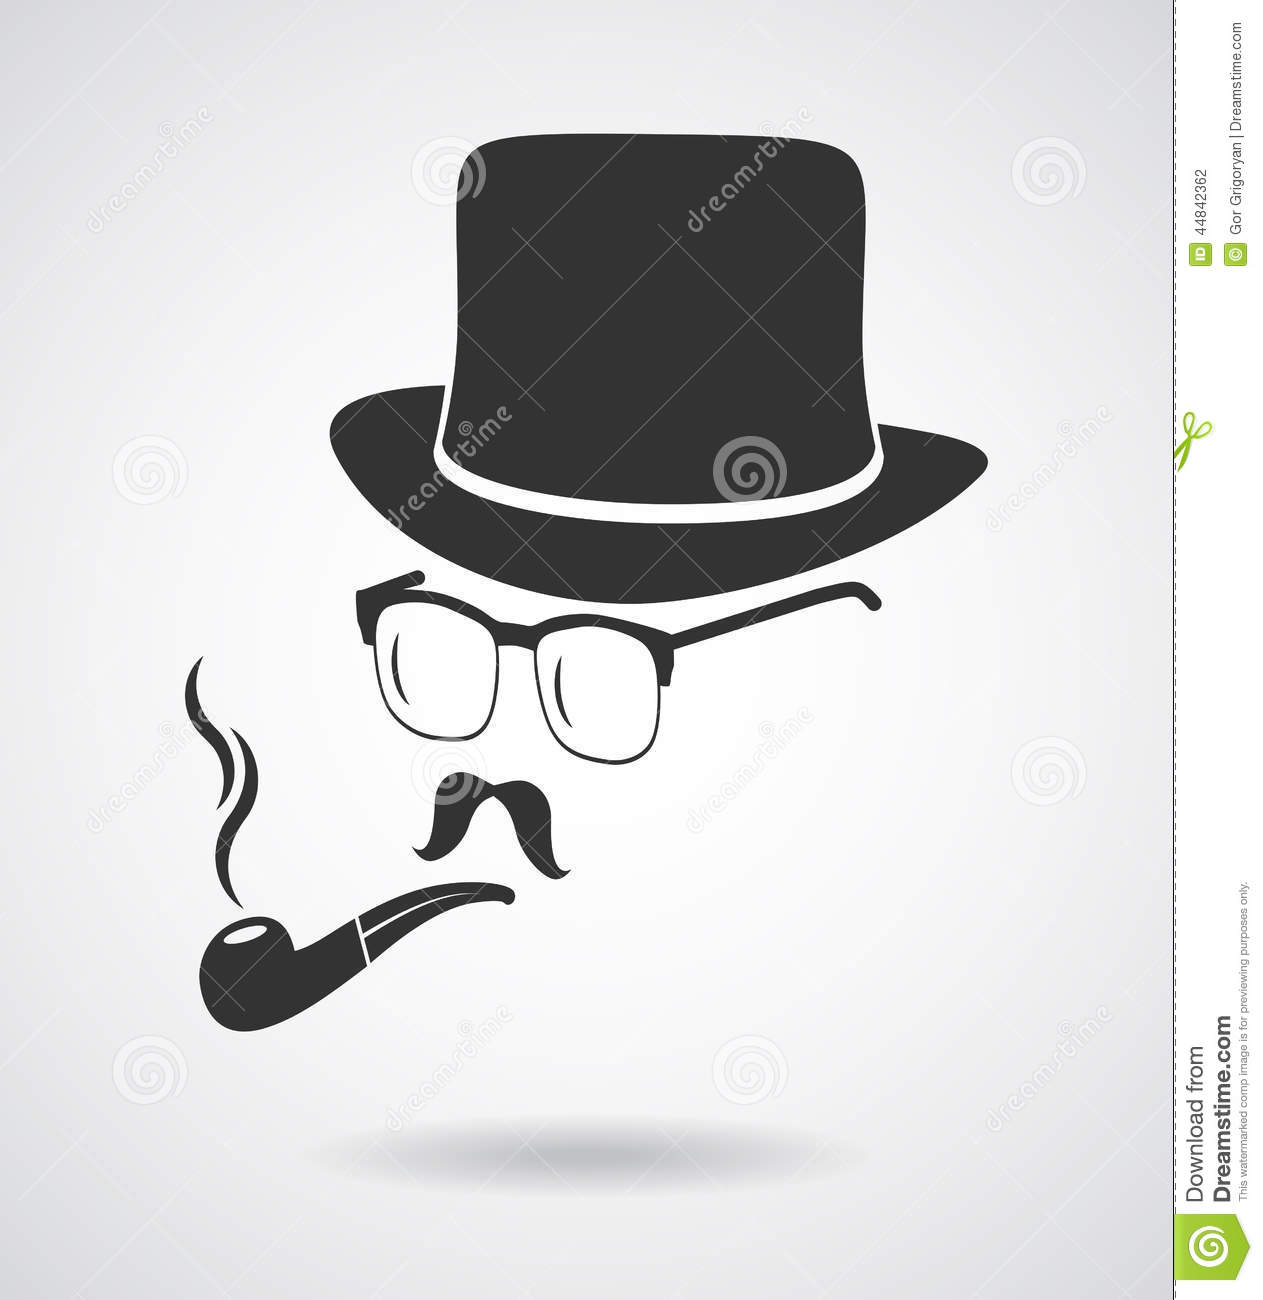 b248c866131bb6 Royalty-Free Vector. Smoking gentleman. Vintage design elements set like  icon